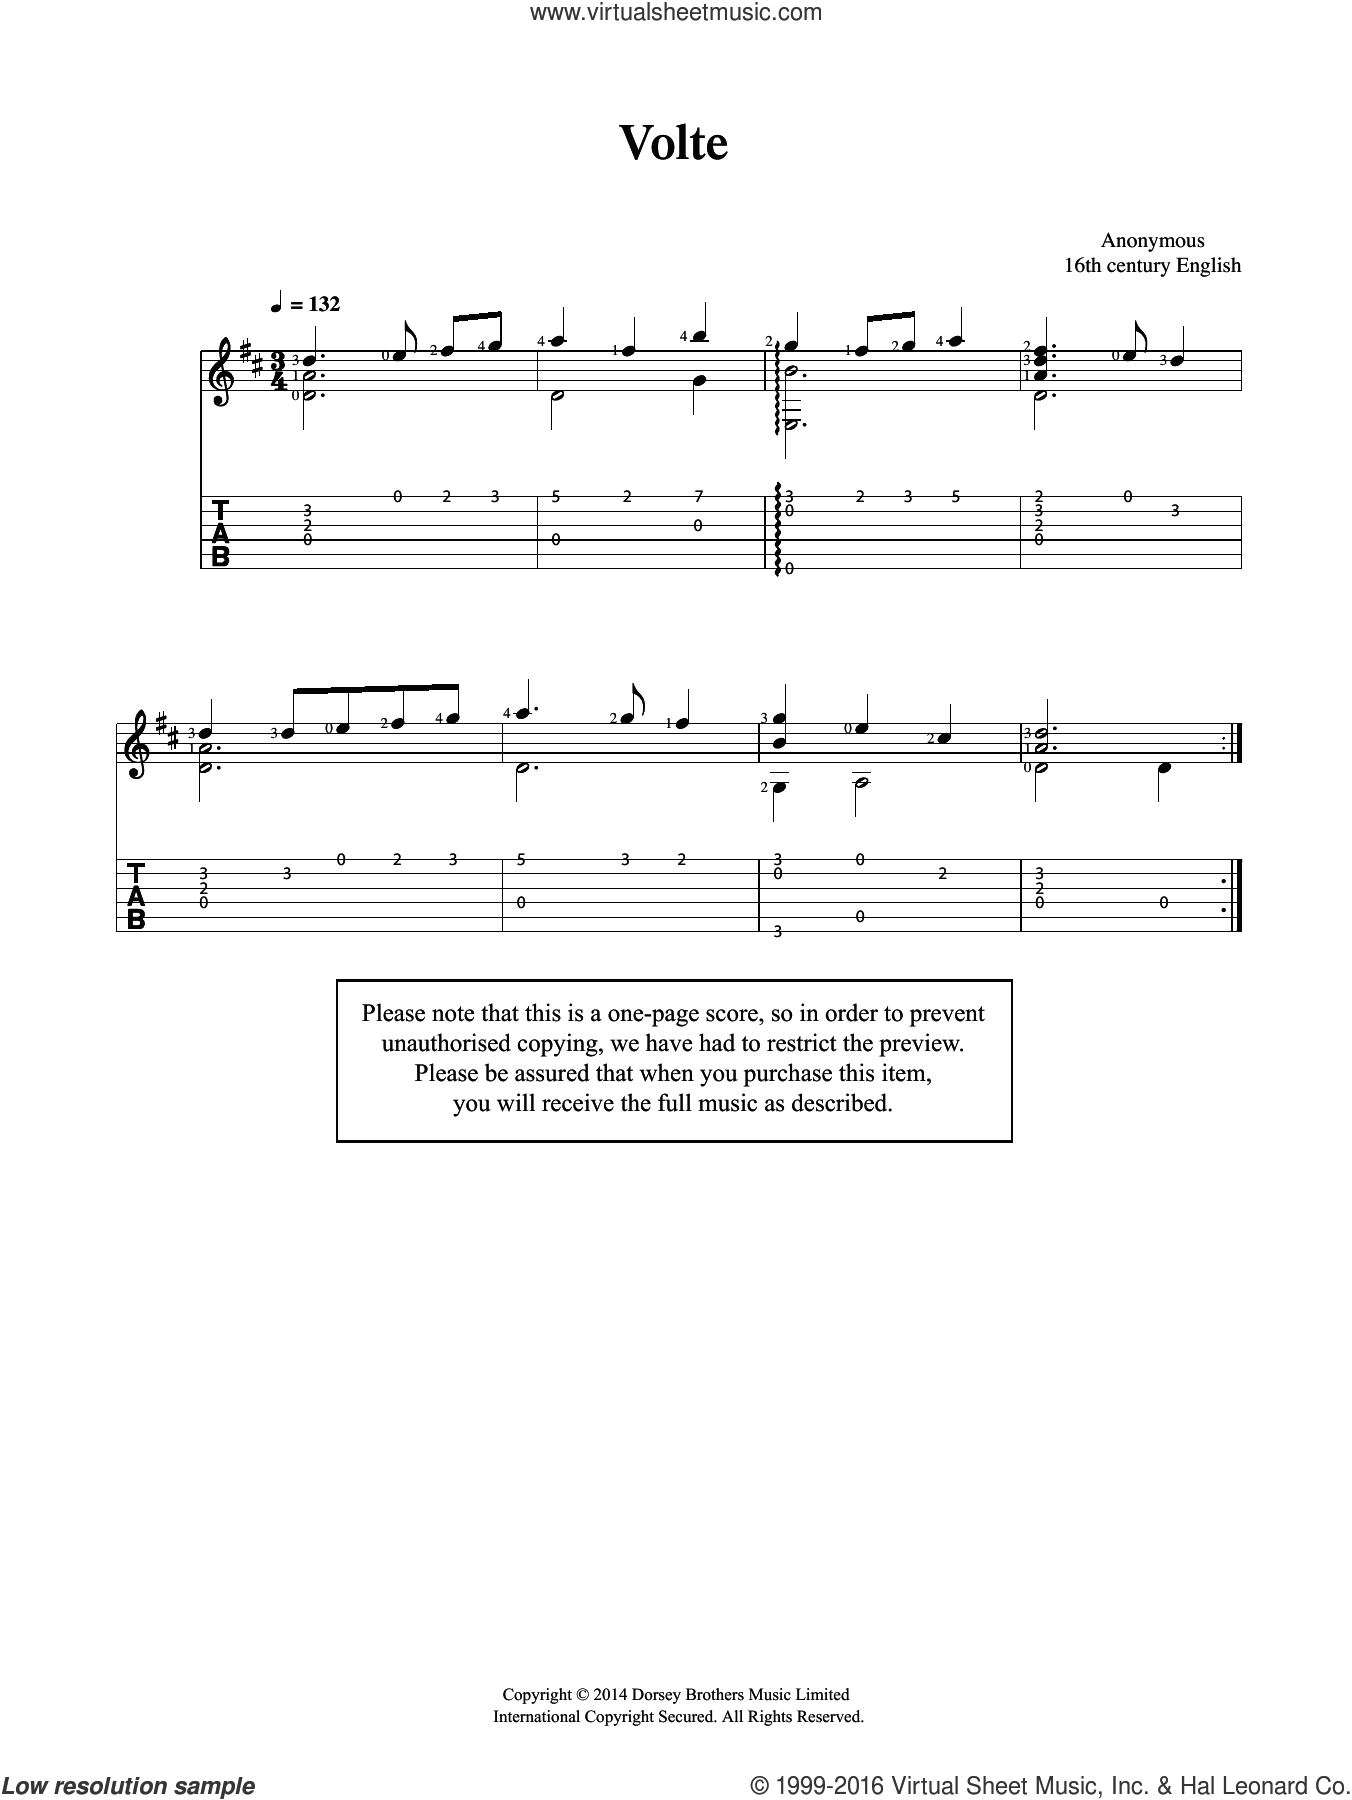 Volte sheet music for guitar solo (chords) by Anonymous, classical score, easy guitar (chords)